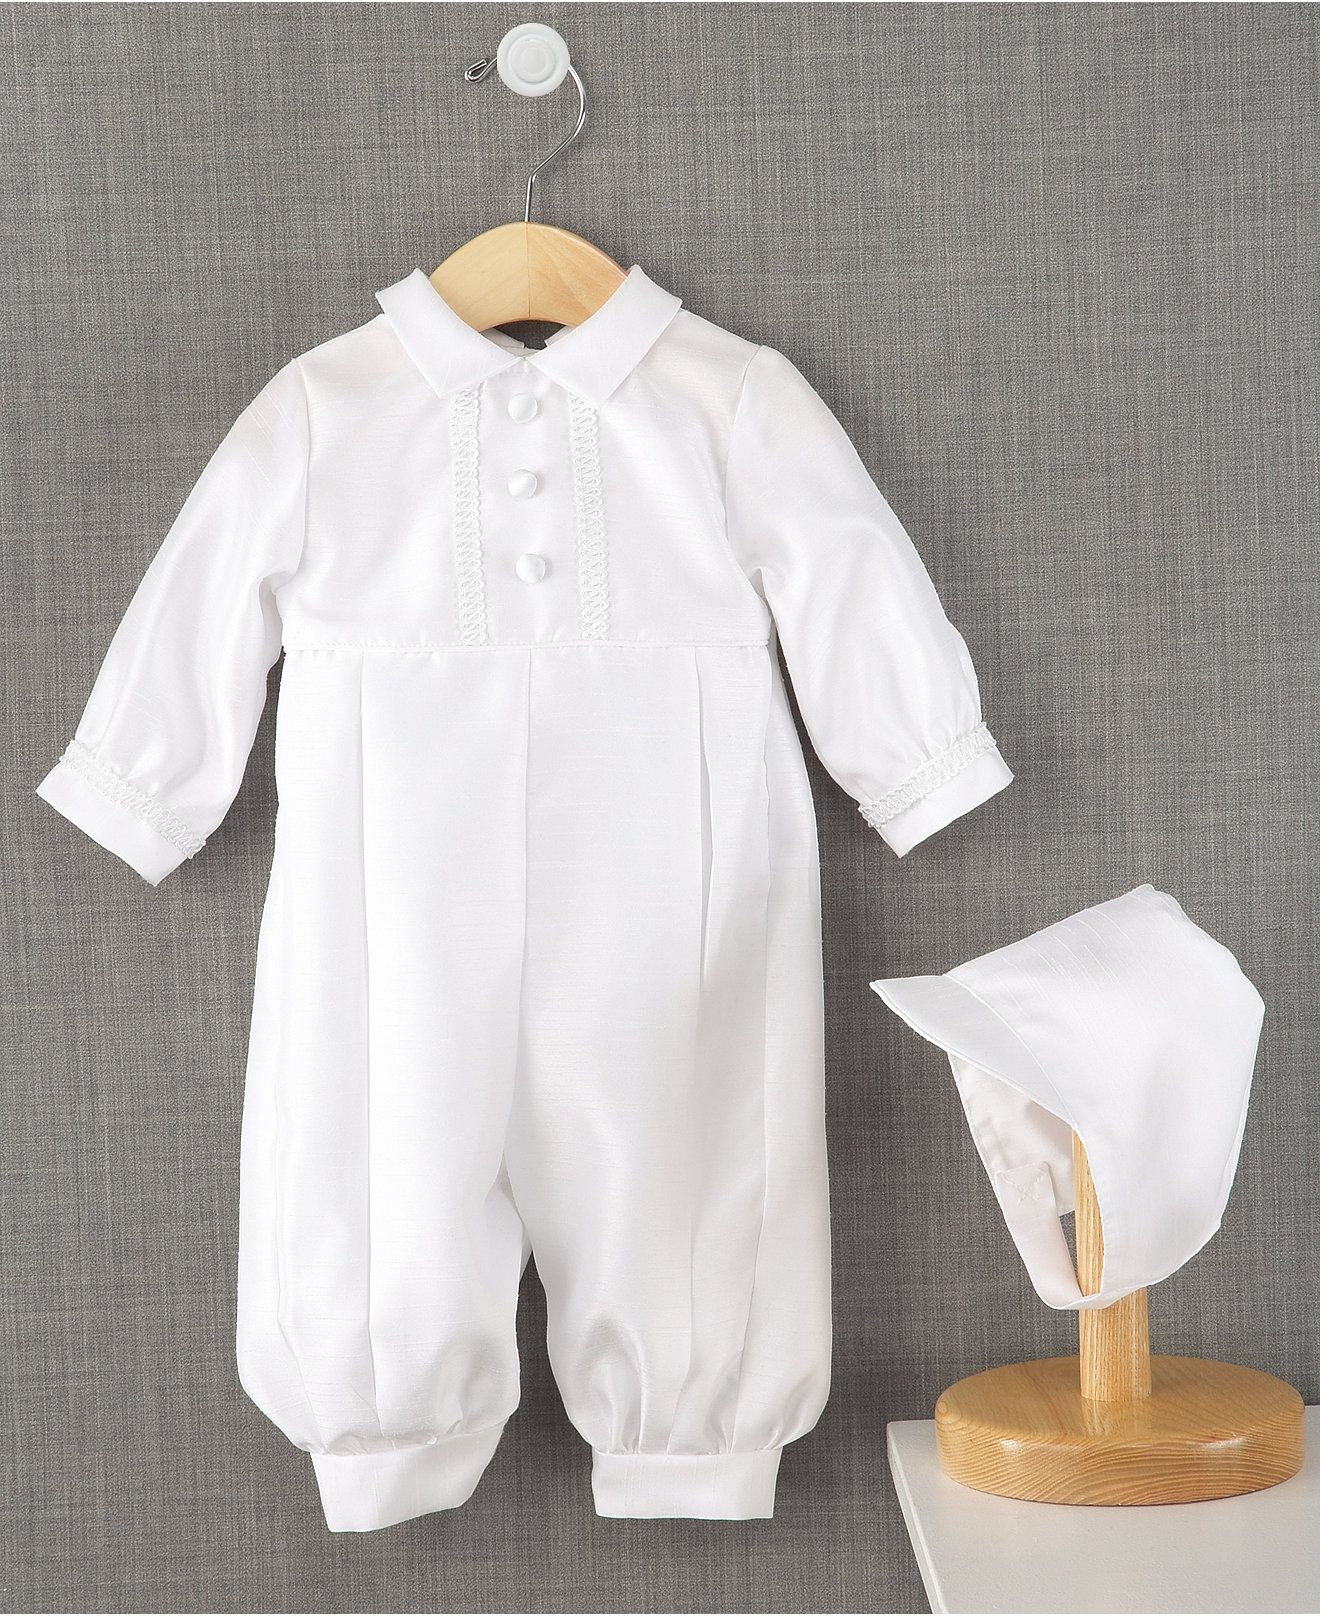 401f7d524 Lauren Madison Baby Romper, Baby Boys Full Length Christening Romper with  Matching Hat - Kids & Baby - Macy's